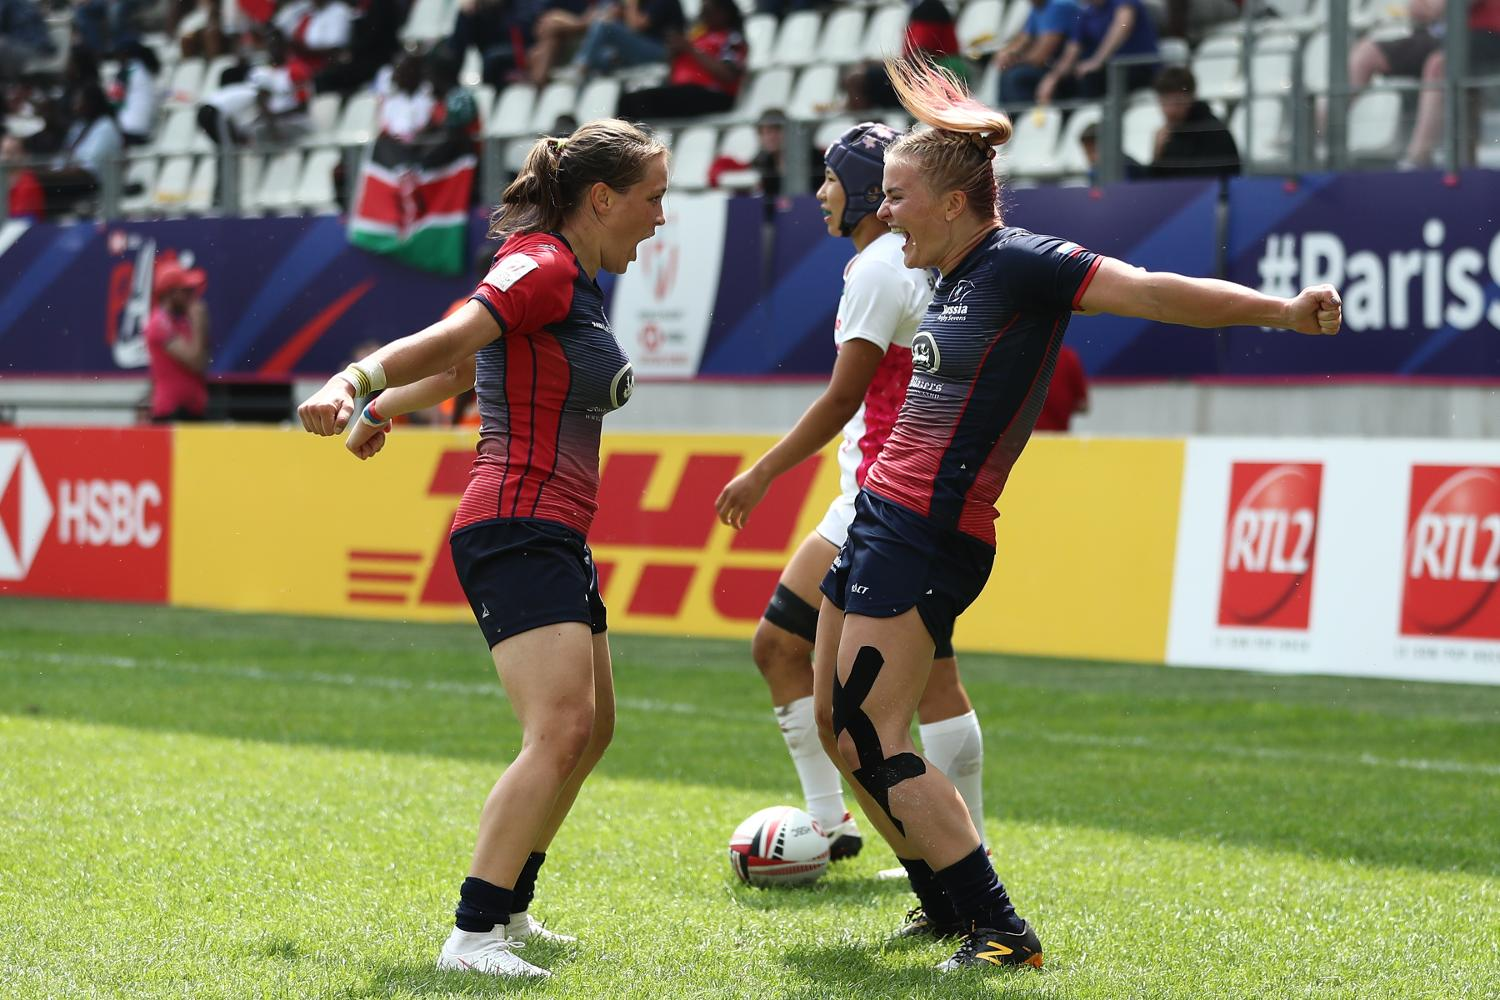 HSBC Paris Sevens 2018 - Women's Day Two